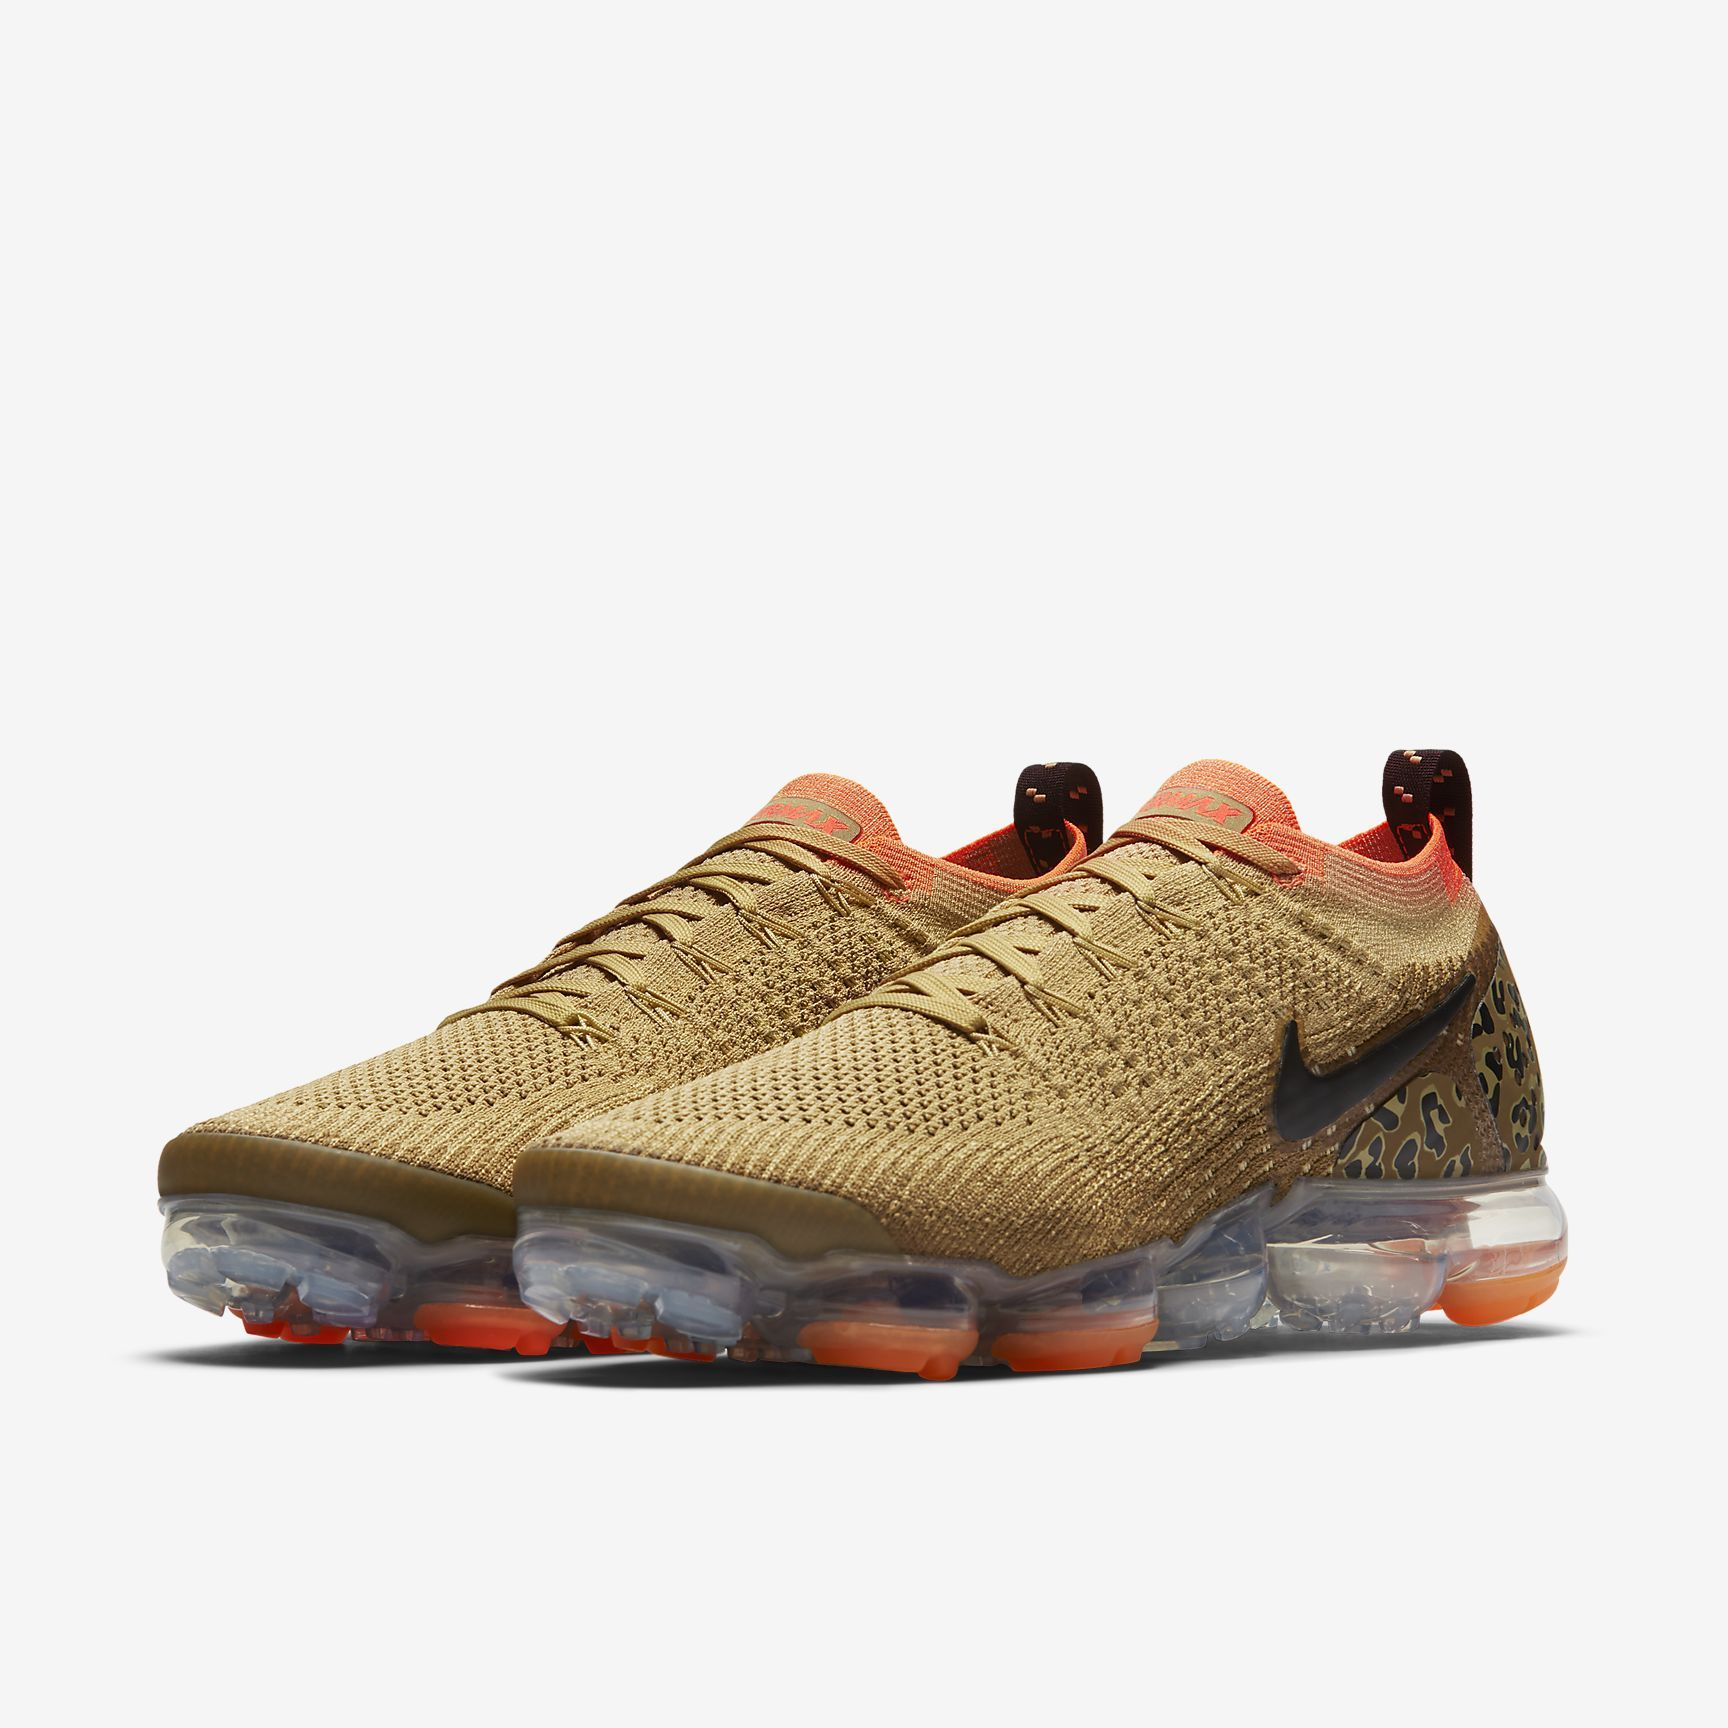 pretty nice a074f 52521 Nike Air VaporMax Flyknit 2 Cheetah Men s Shoe